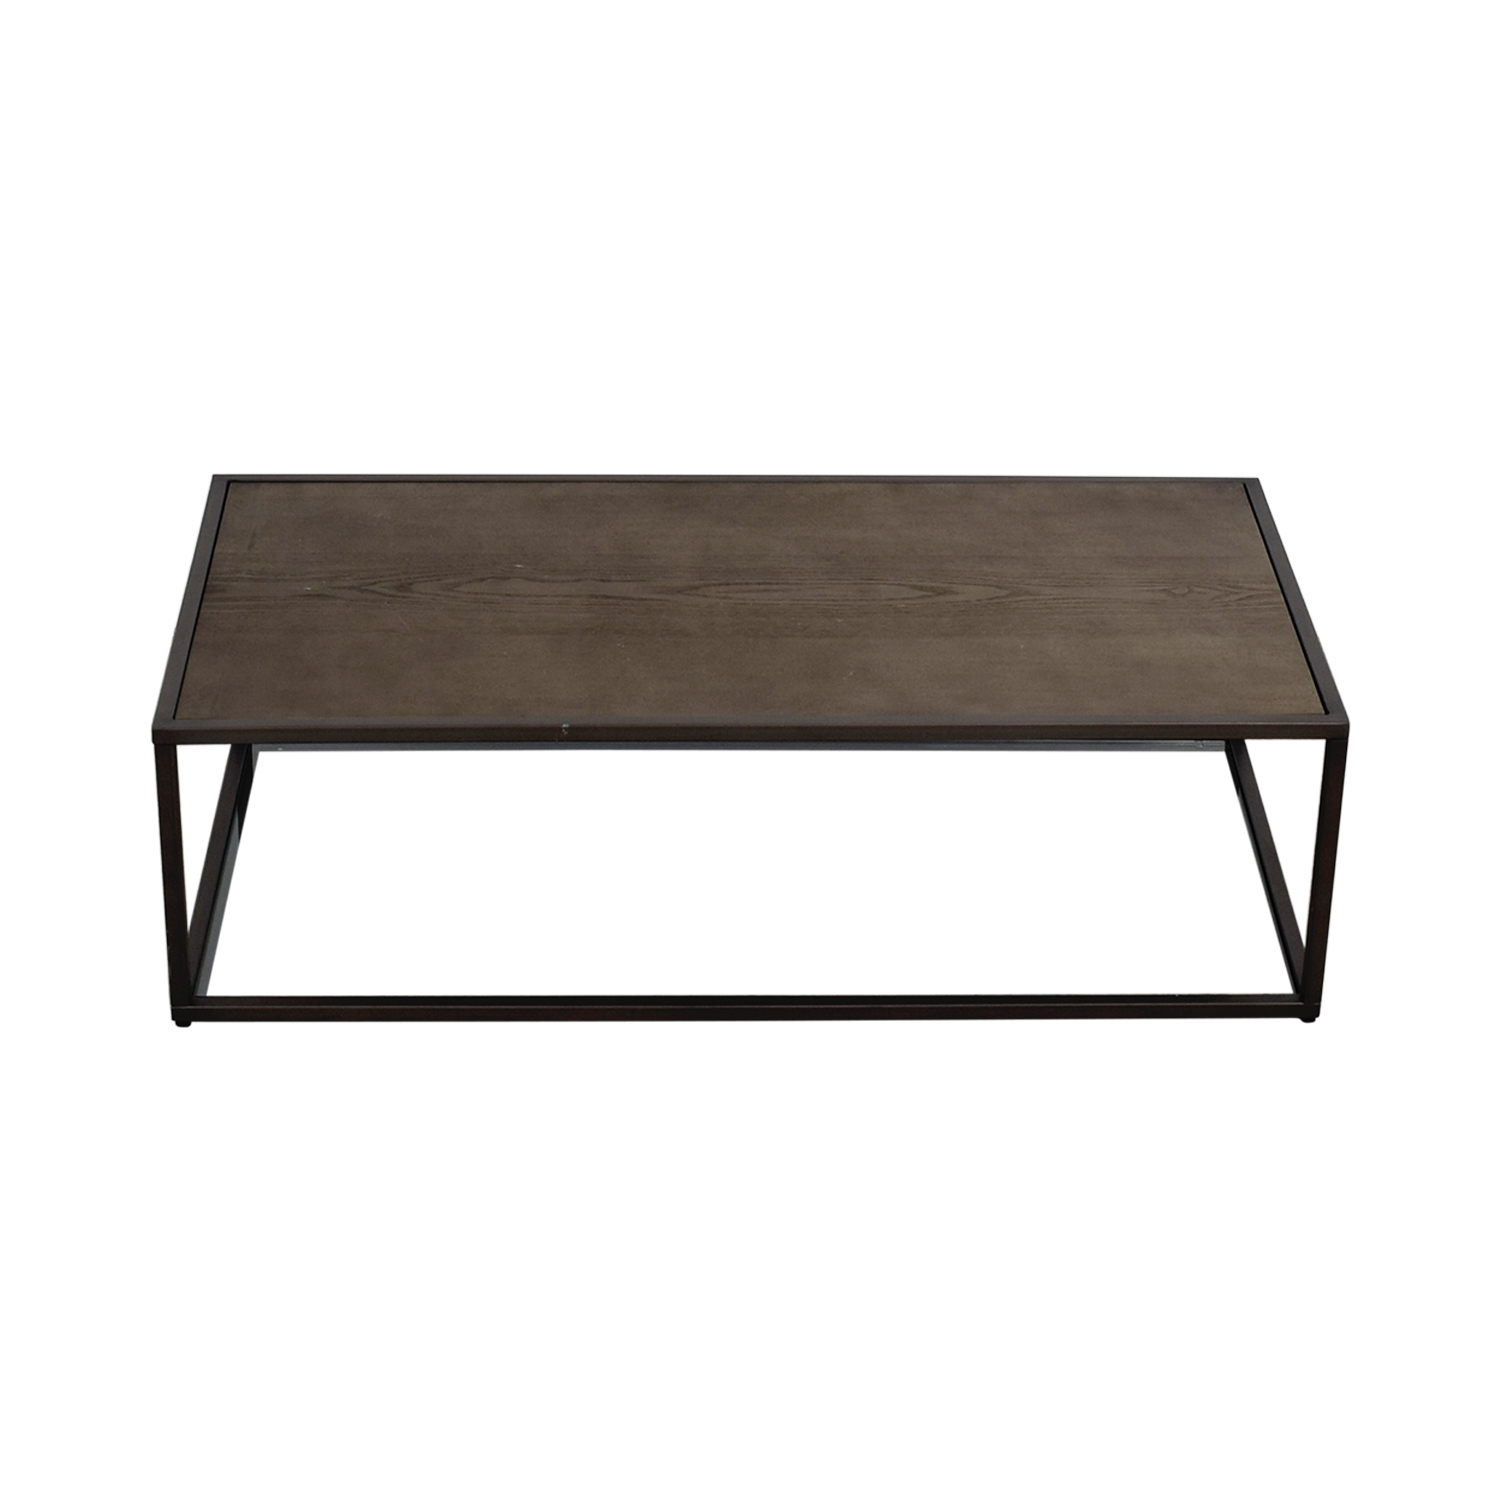 Crate & Barrel Crate & Barrel Switch Coffee Table Grey